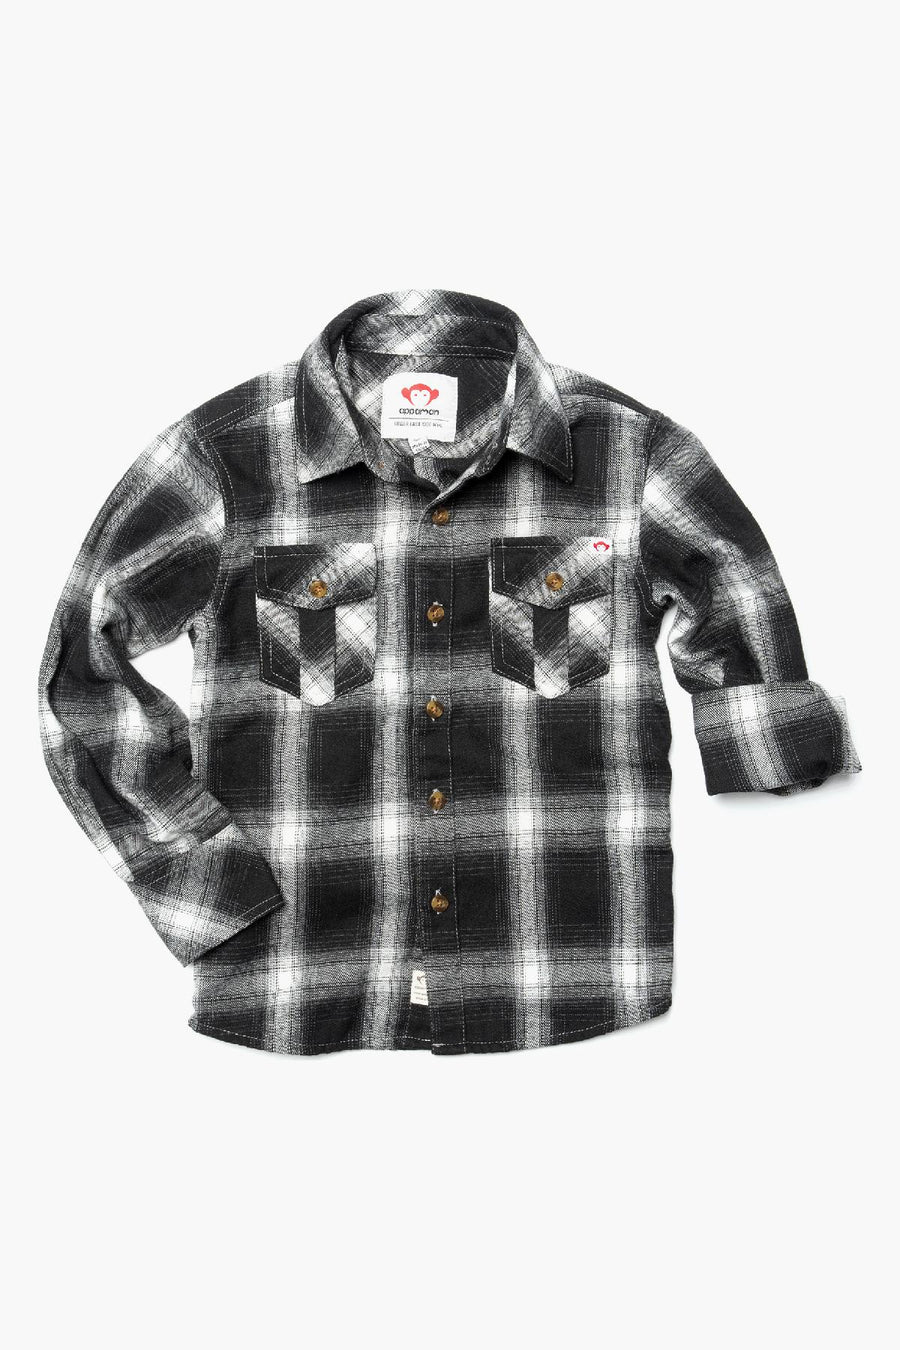 Appaman Greyscale Flannel Shirt